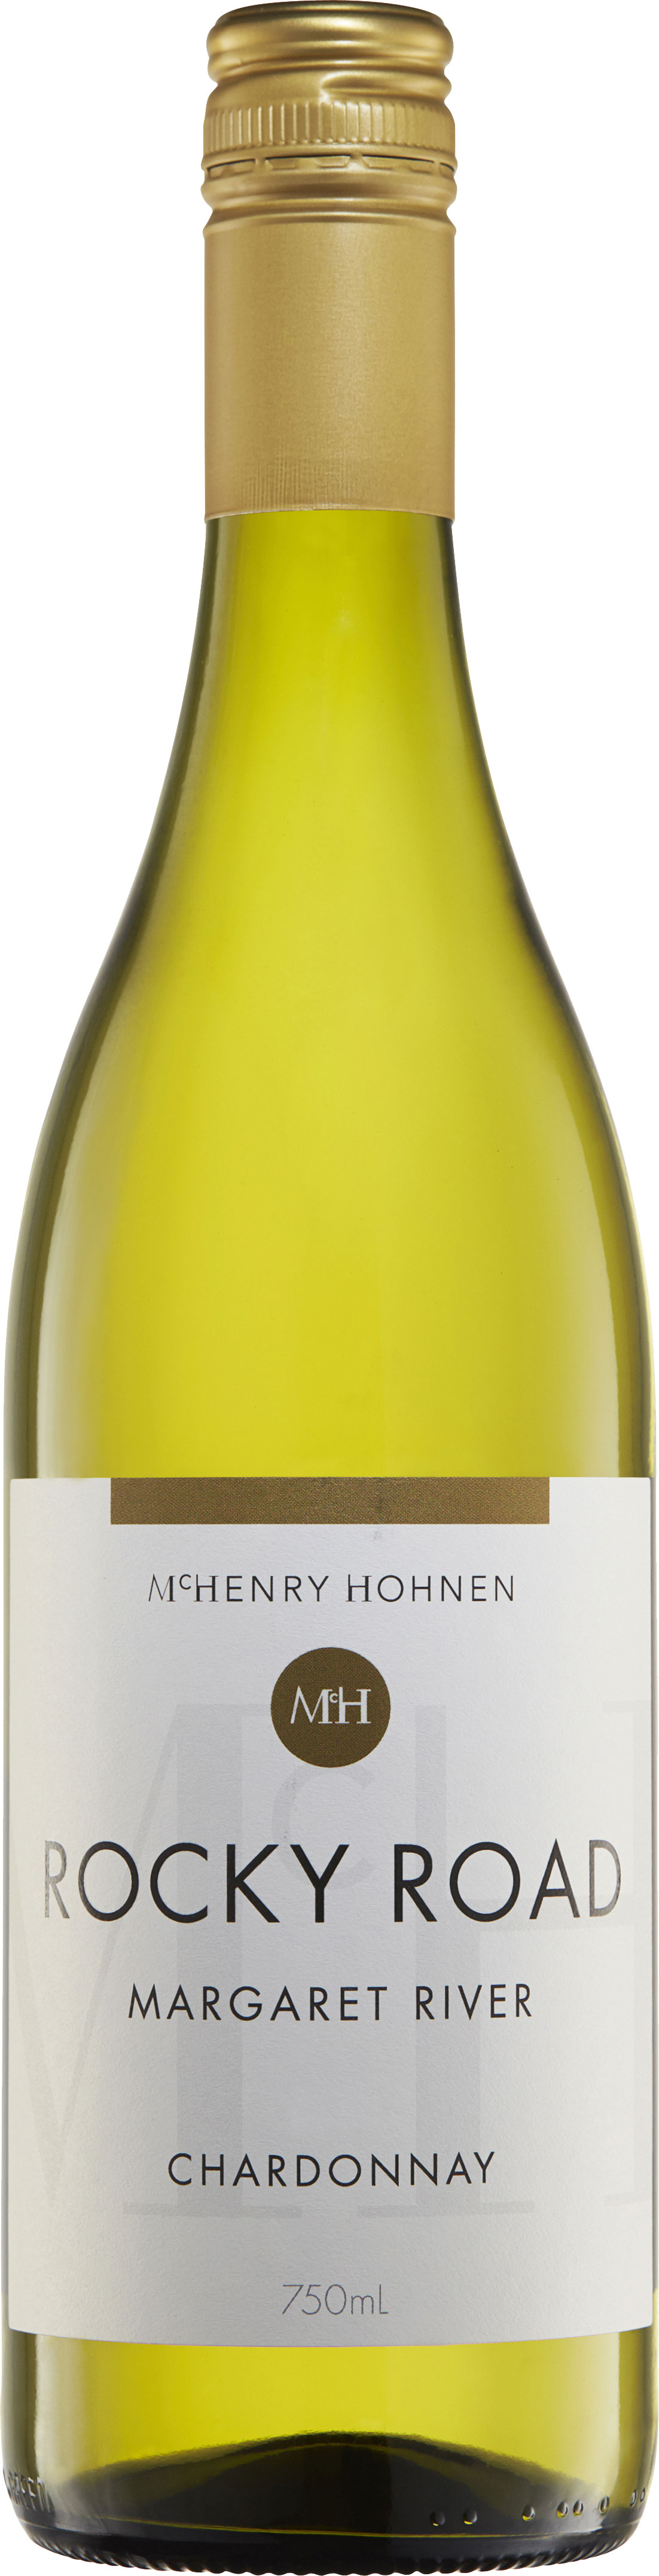 McHenry Hohnen - Rocky Road Chardonnay 2016 6x 75cl Bottles